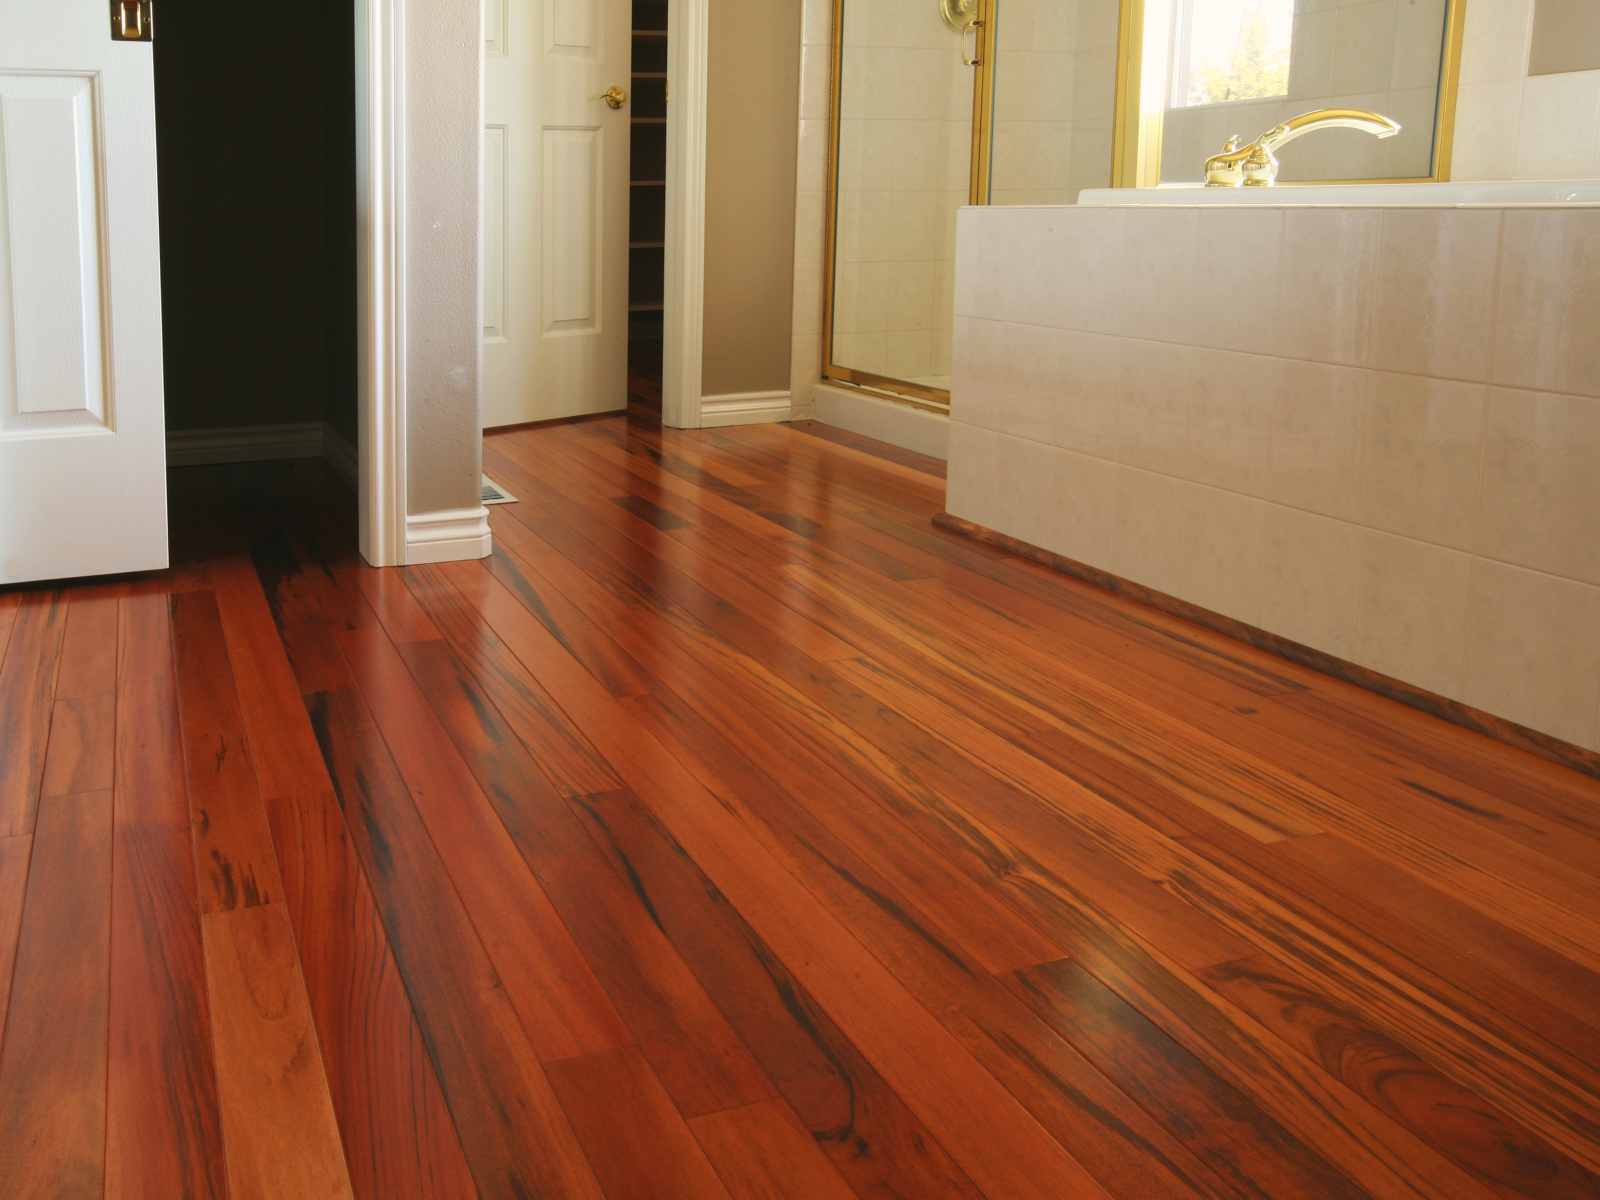 Bamboo flooring eco friendly flooring for your home for Eco bamboo flooring